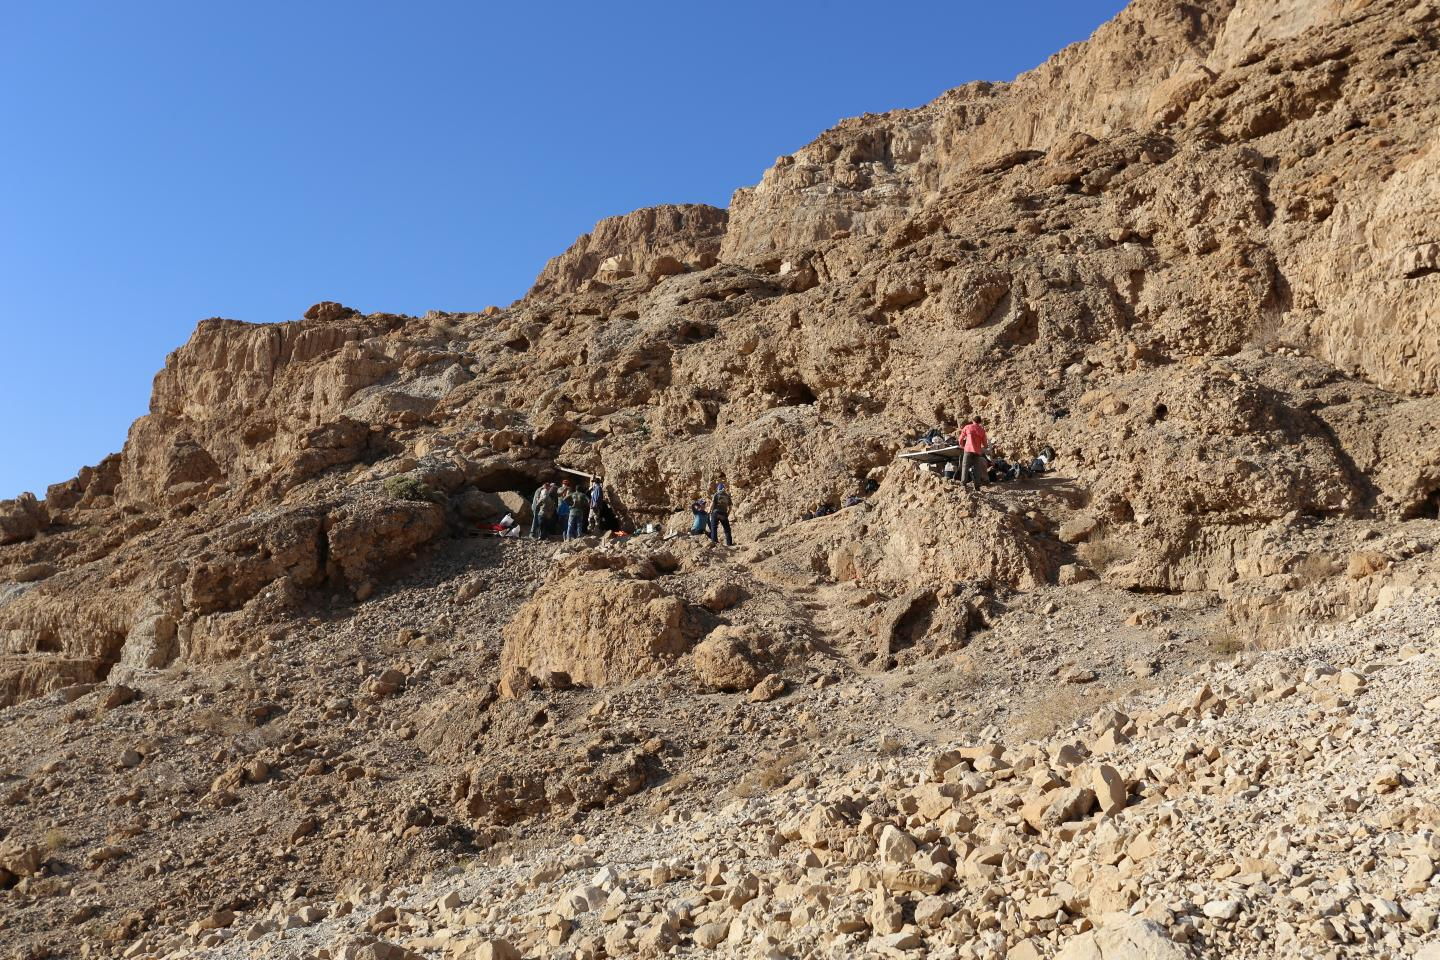 Fault cliff and entrance, on the left, to a cave near the Dead Sea, excavated by Hebrew University archaeologists, who designated it the 12th Dead Sea Scrolls cave. (Casey L. Olson and Oren Gutfeld)